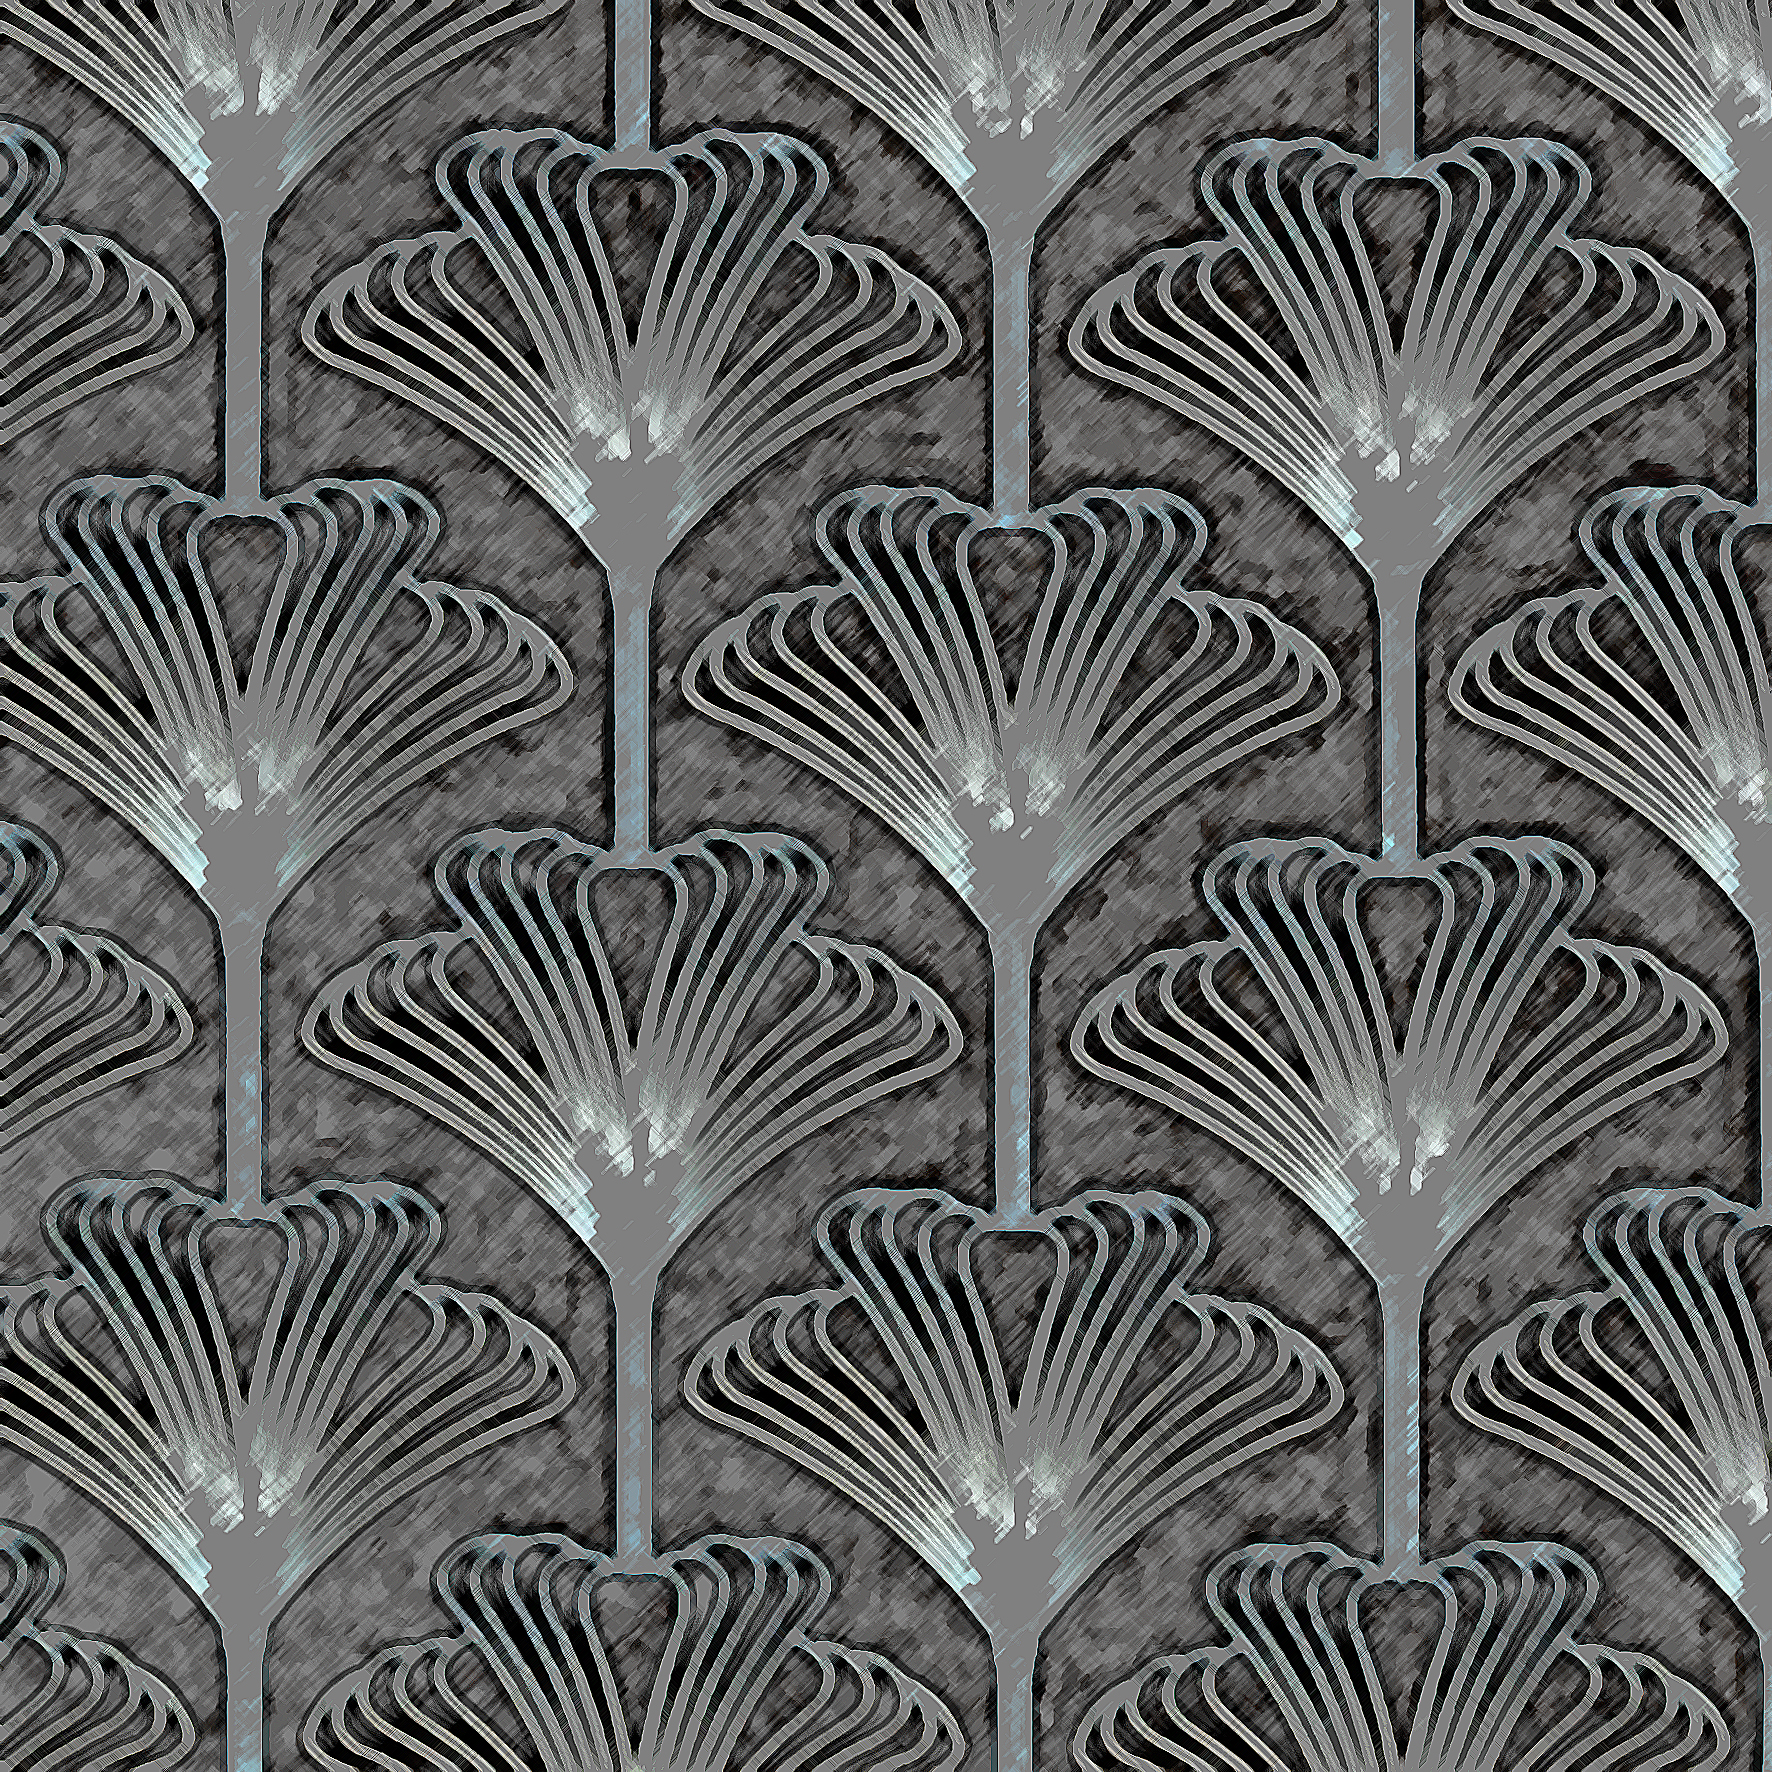 Art Deco Manipulated Fabrics Aliki Kouzelis